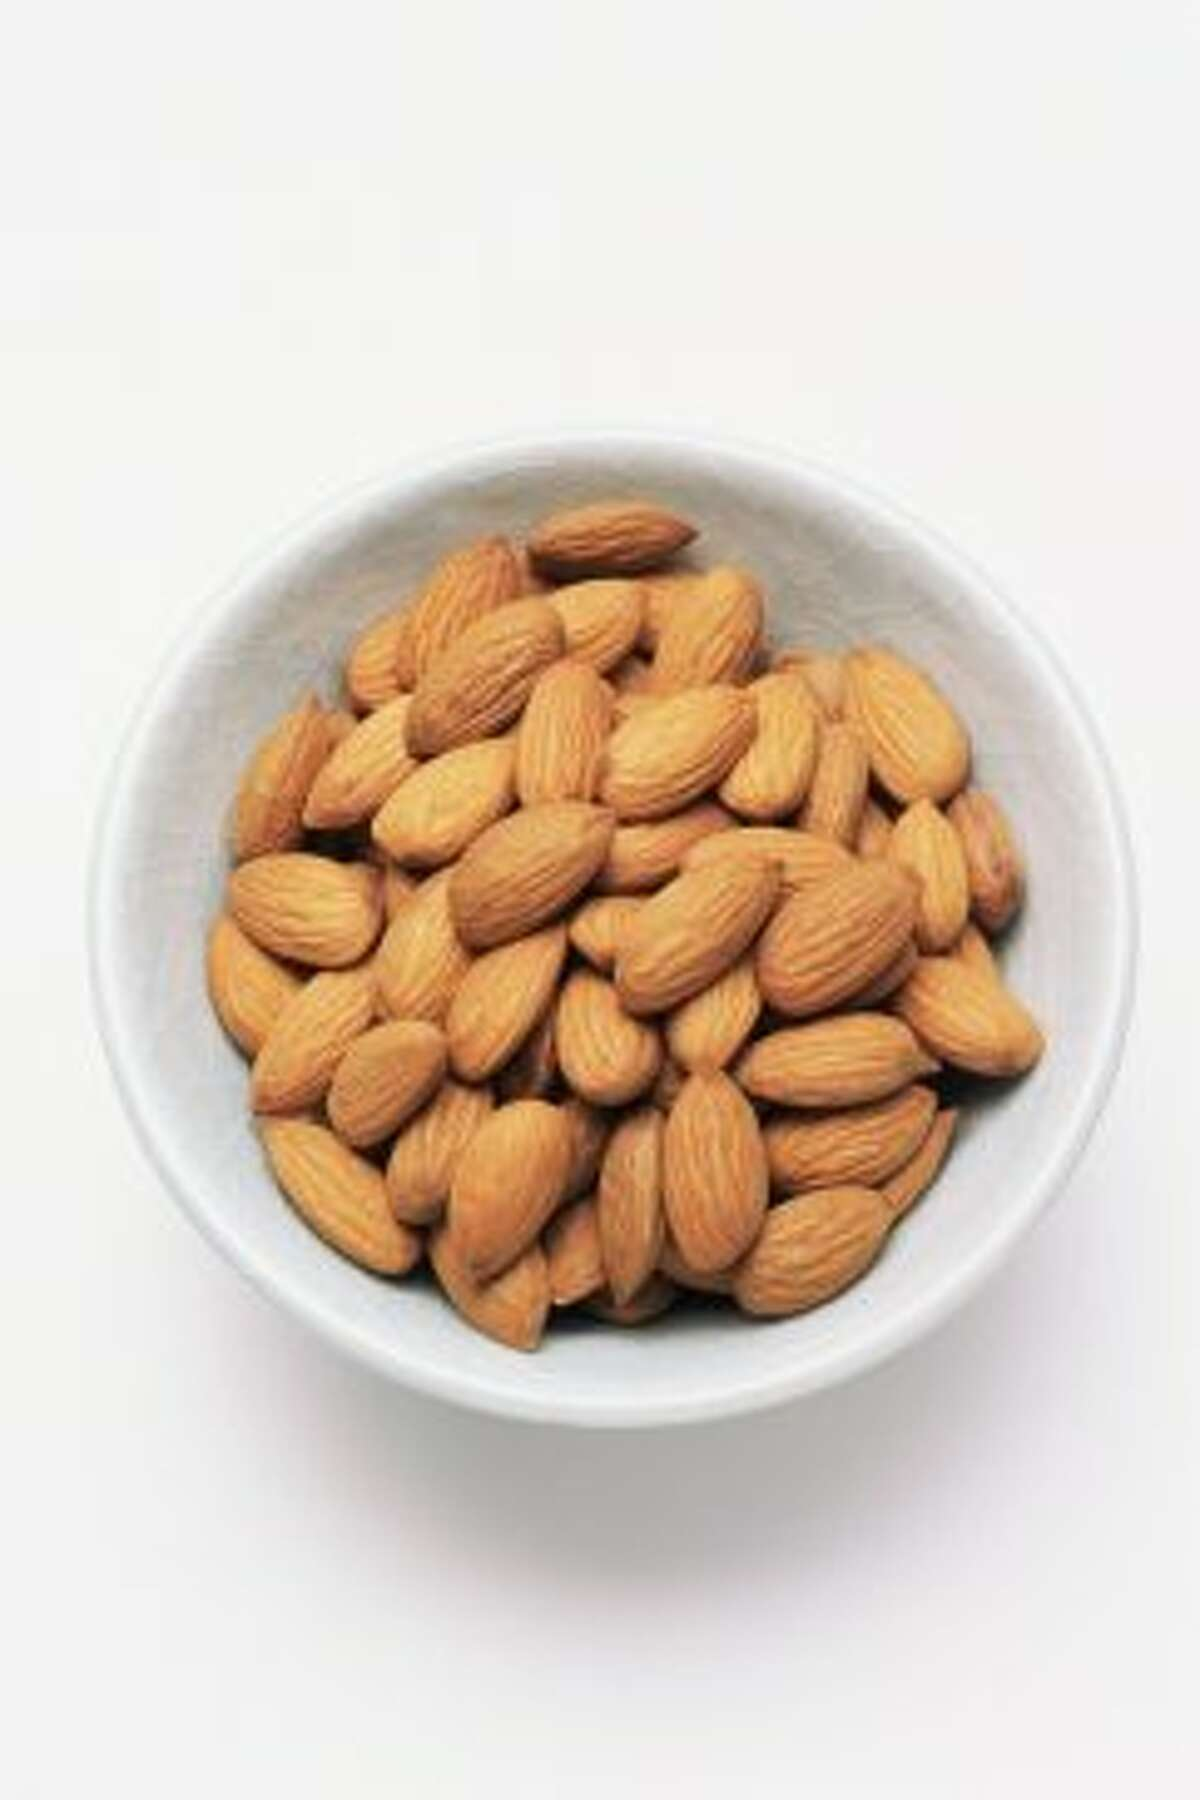 Need more calcium, but dairy's not an option? Try these foods instead. Almonds have more calcium than any other nut. Have a quarter-cup serving size.